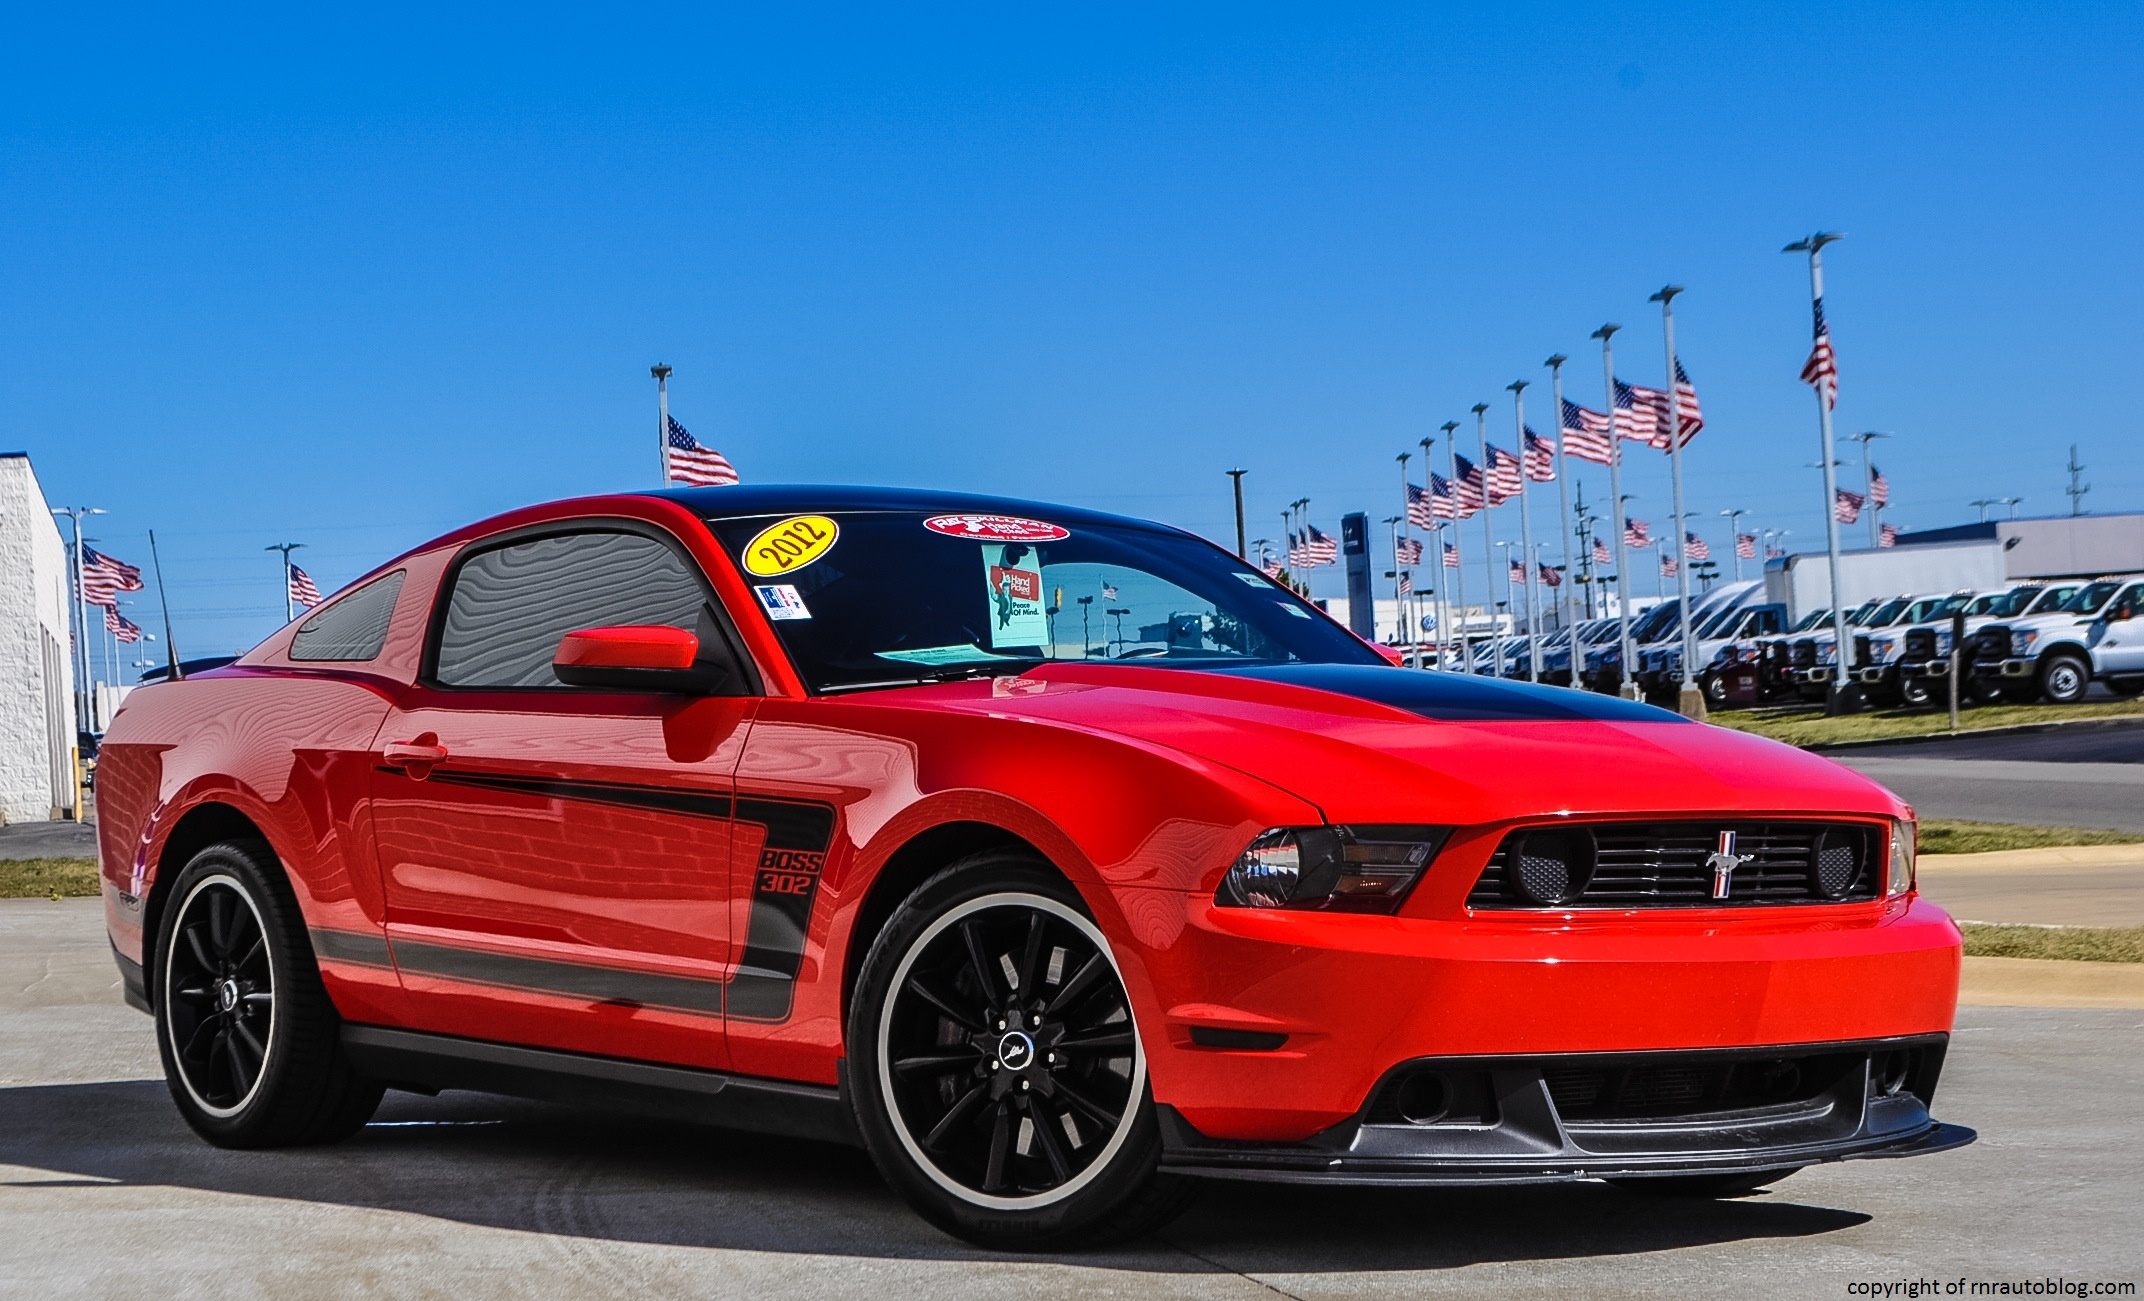 2012 Ford Mustang Boss 302 Review | RNR Automotive Blog